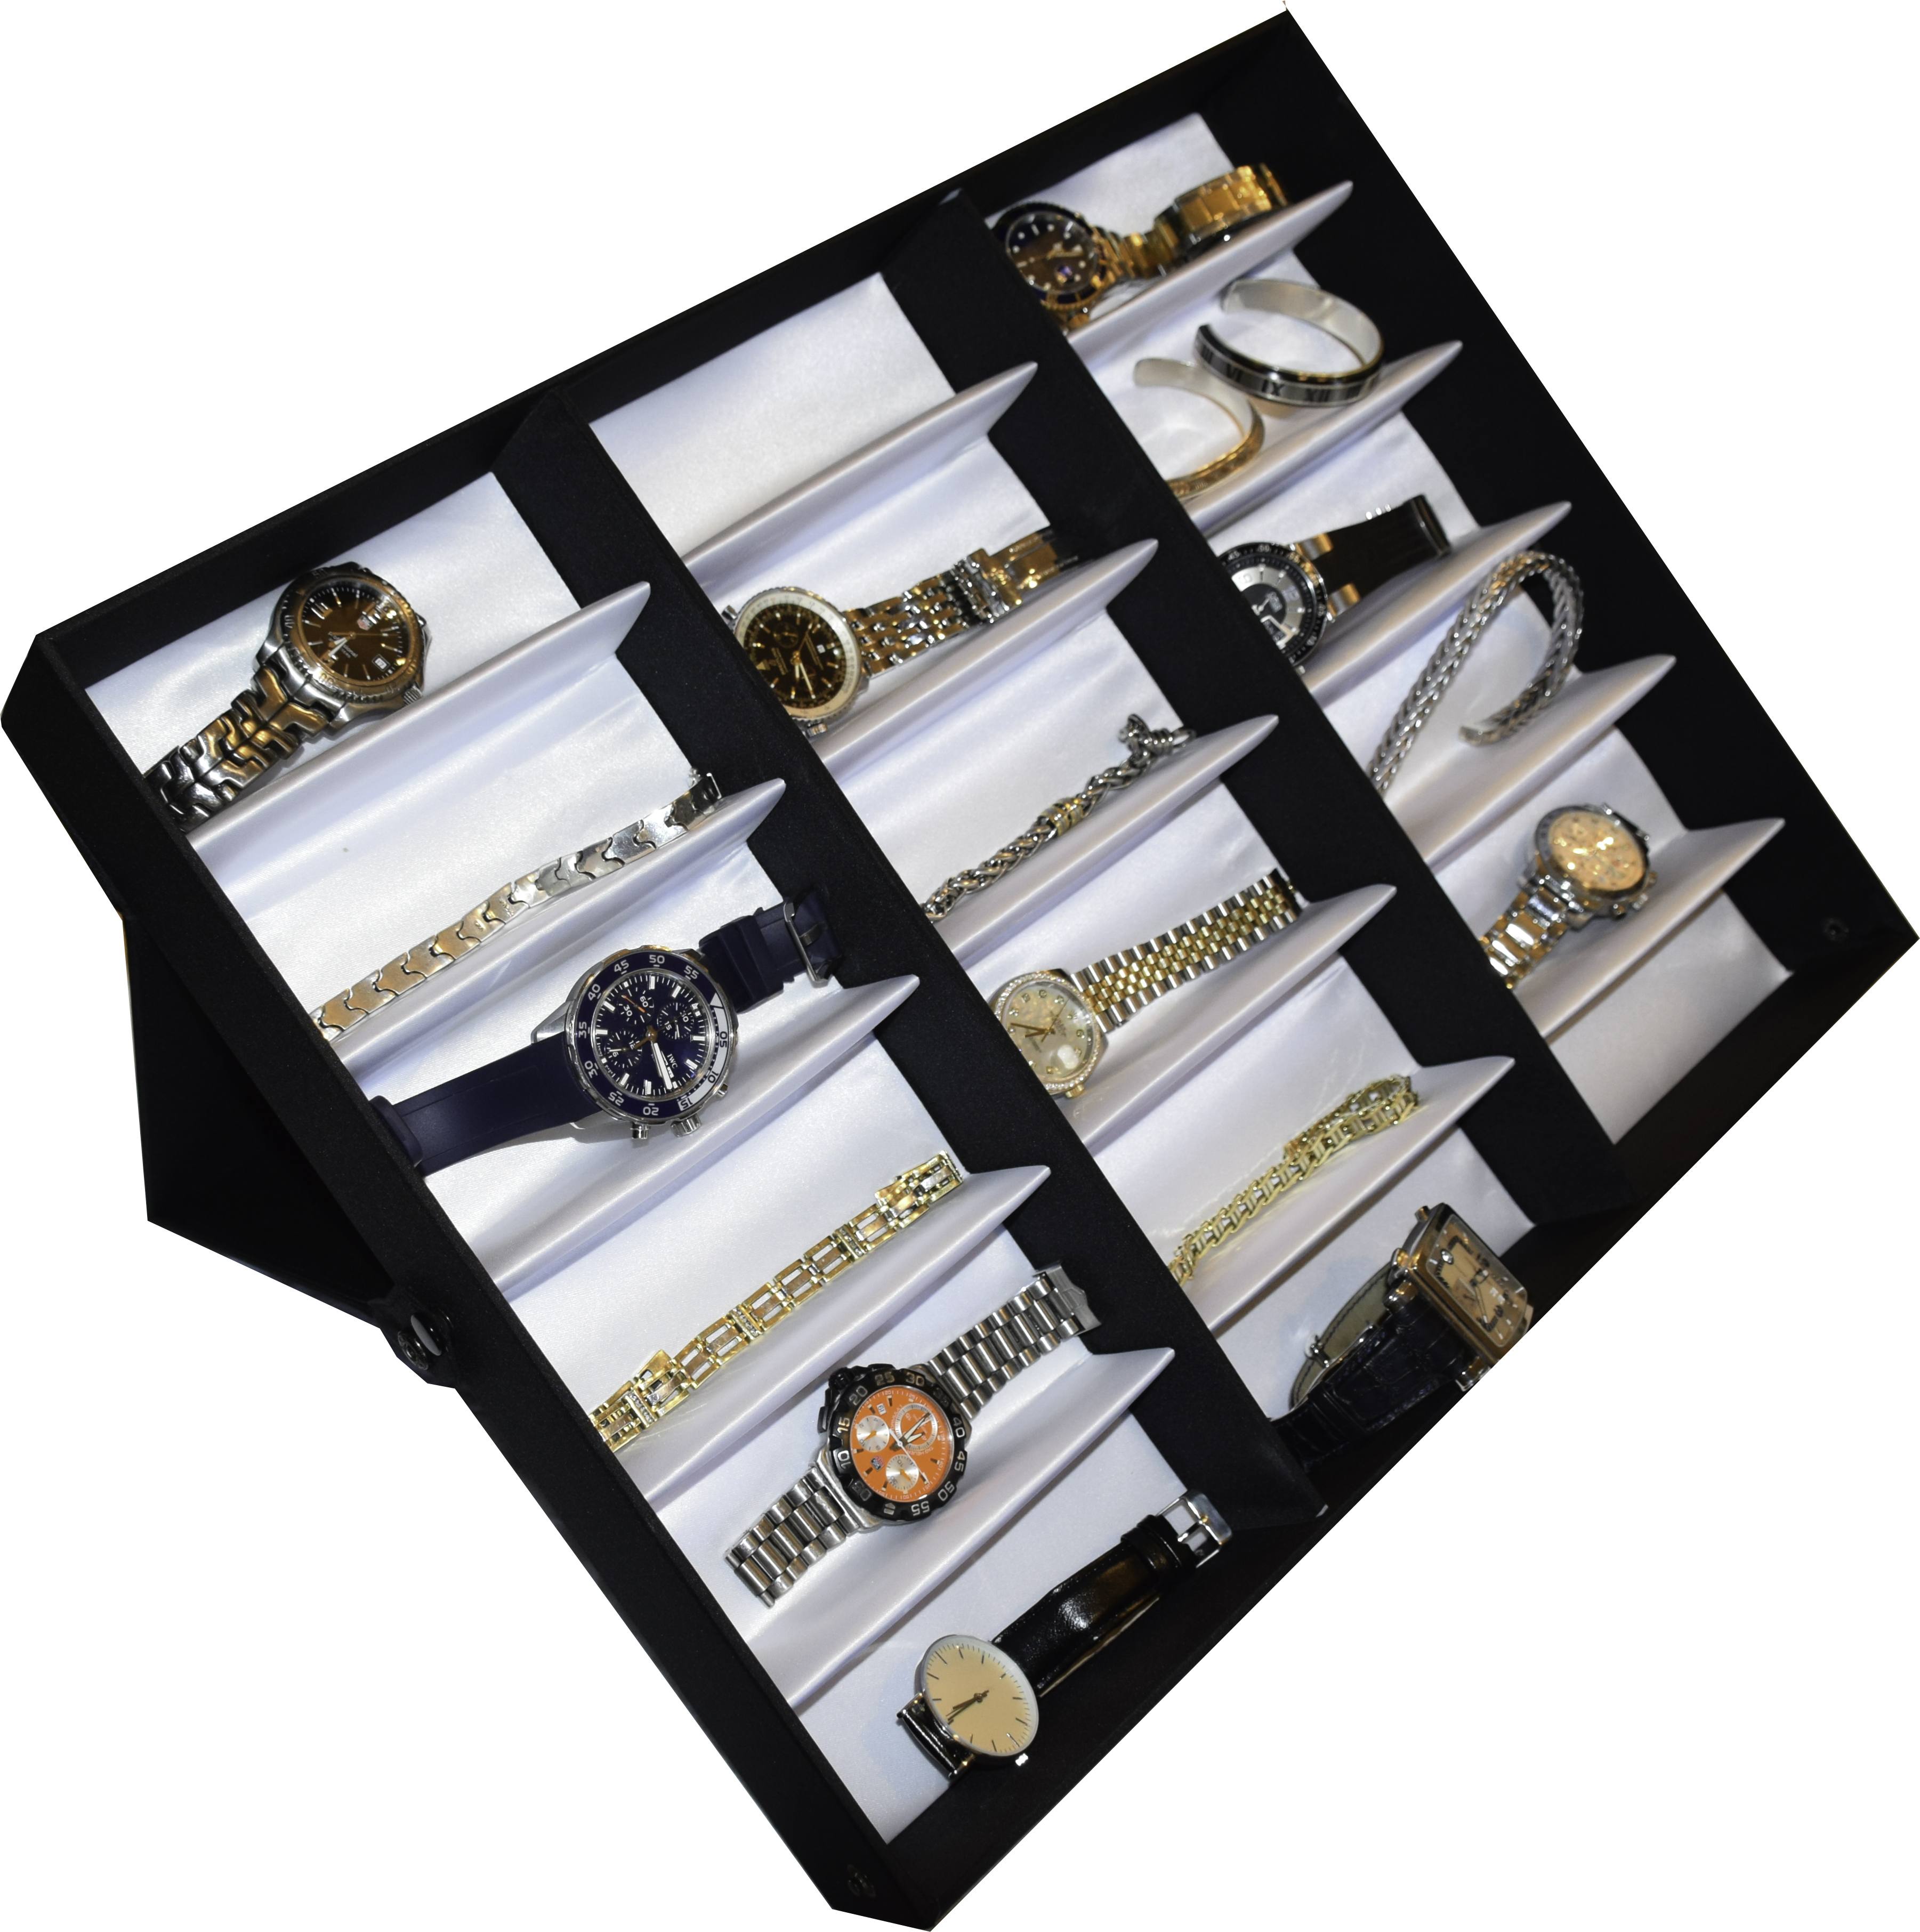 soleil 18-slot display case jewelry